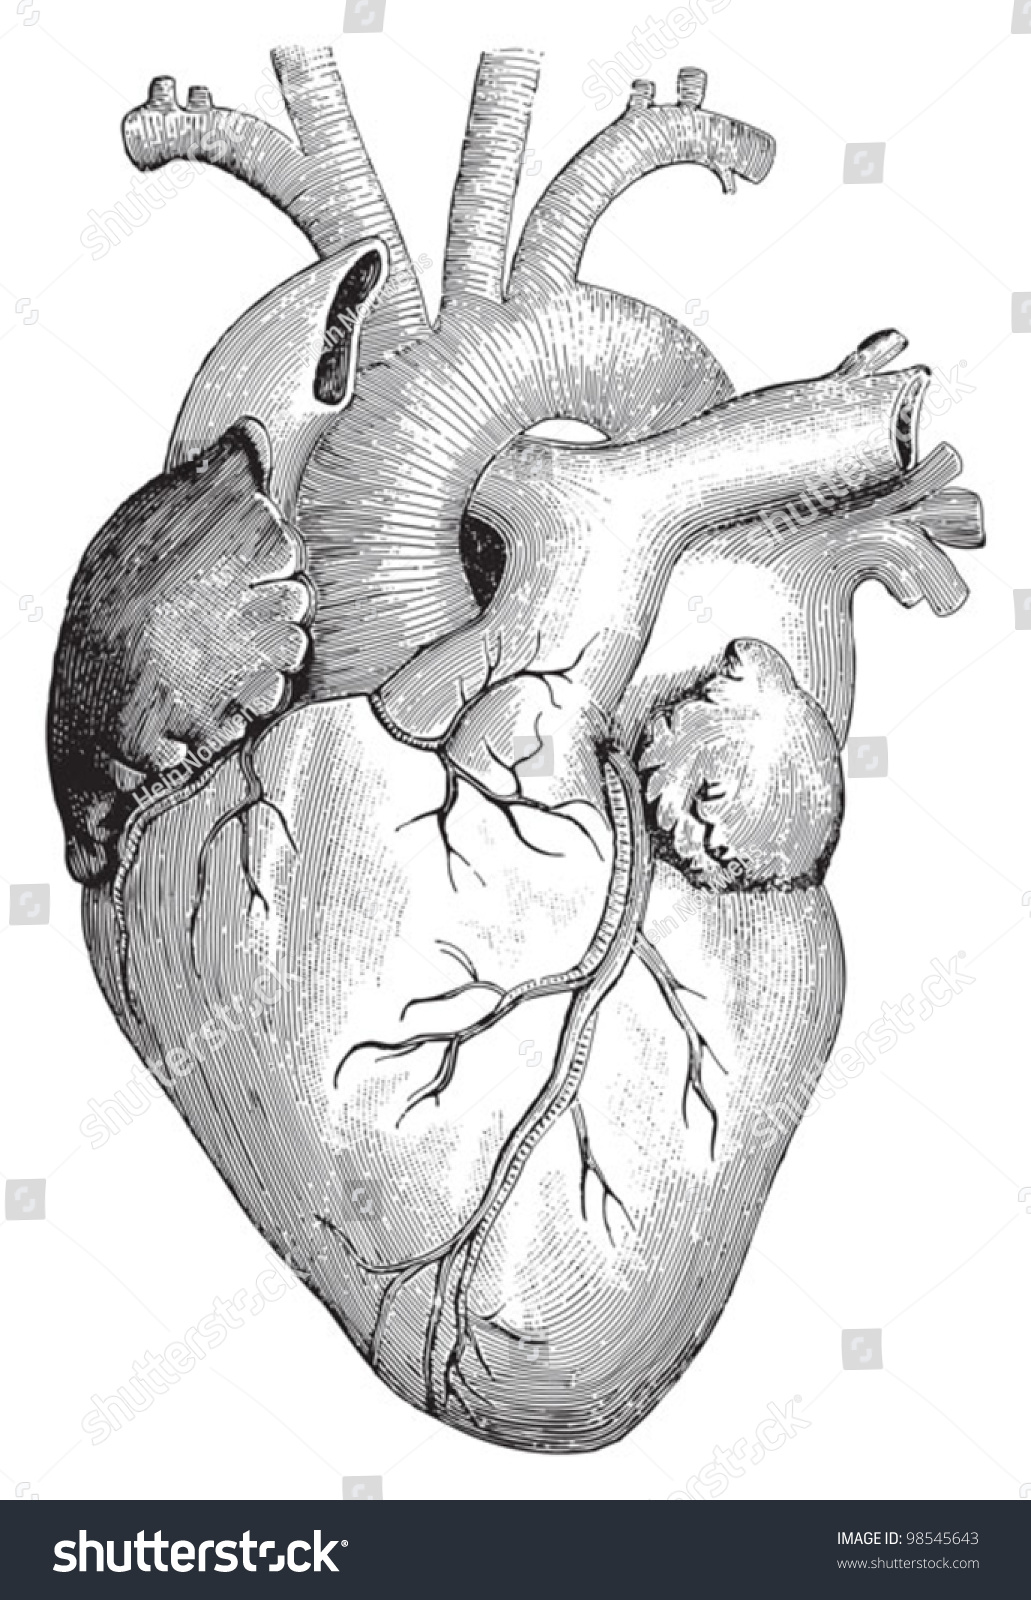 Human Heart Vintage Illustrations Die Frau Stock Vector 98545643 ...